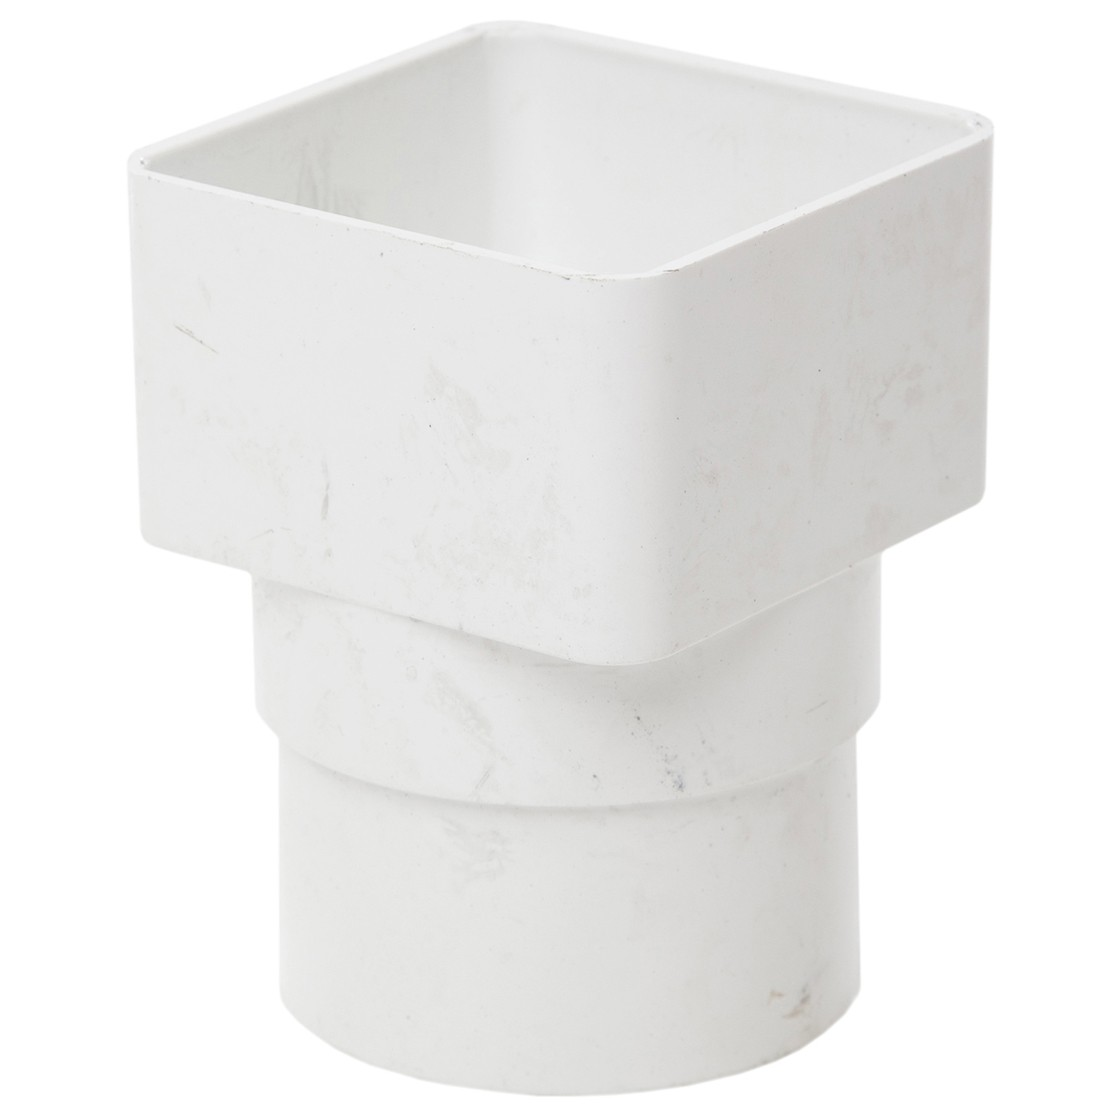 Polypipe 65mm Square to 68mm Round Down Pipe Adaptor - White